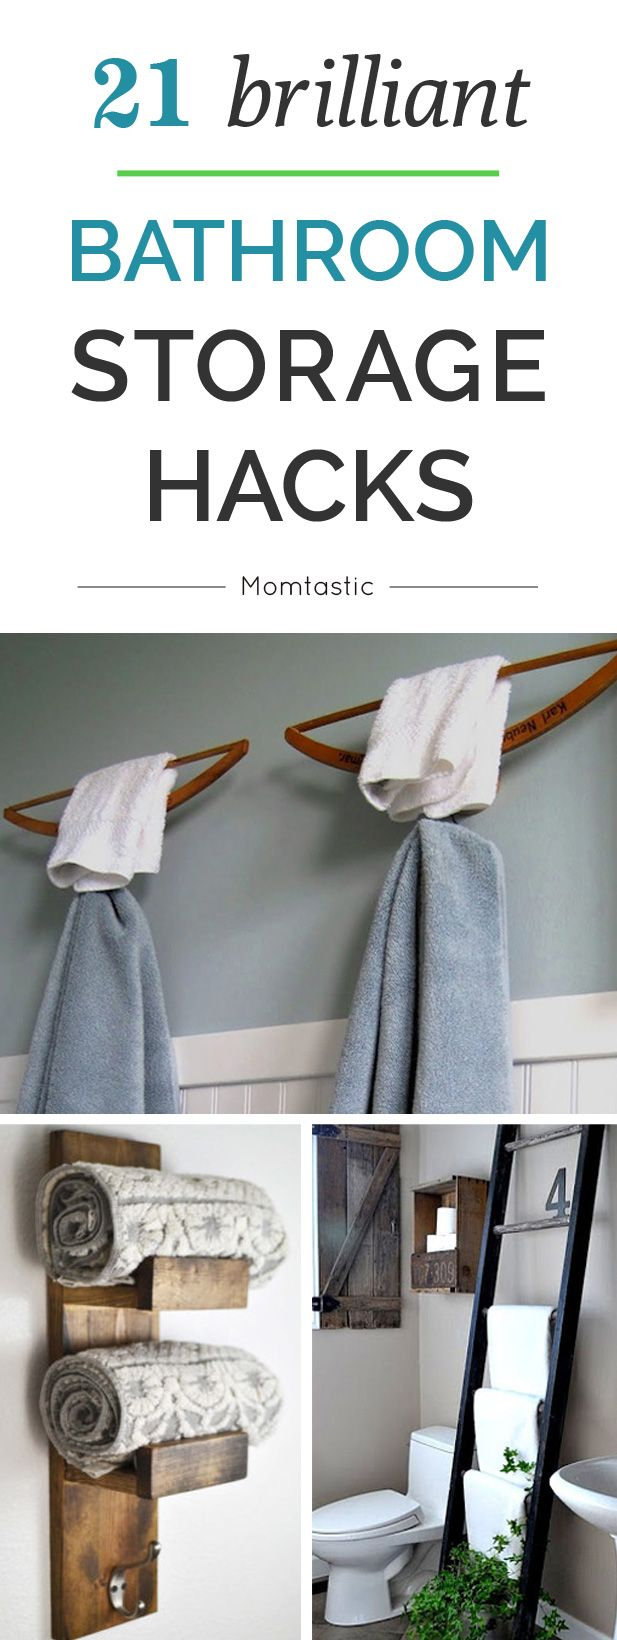 Awesome 17 Storage Hacks For Tiny Bathrooms  Tiny House Pins